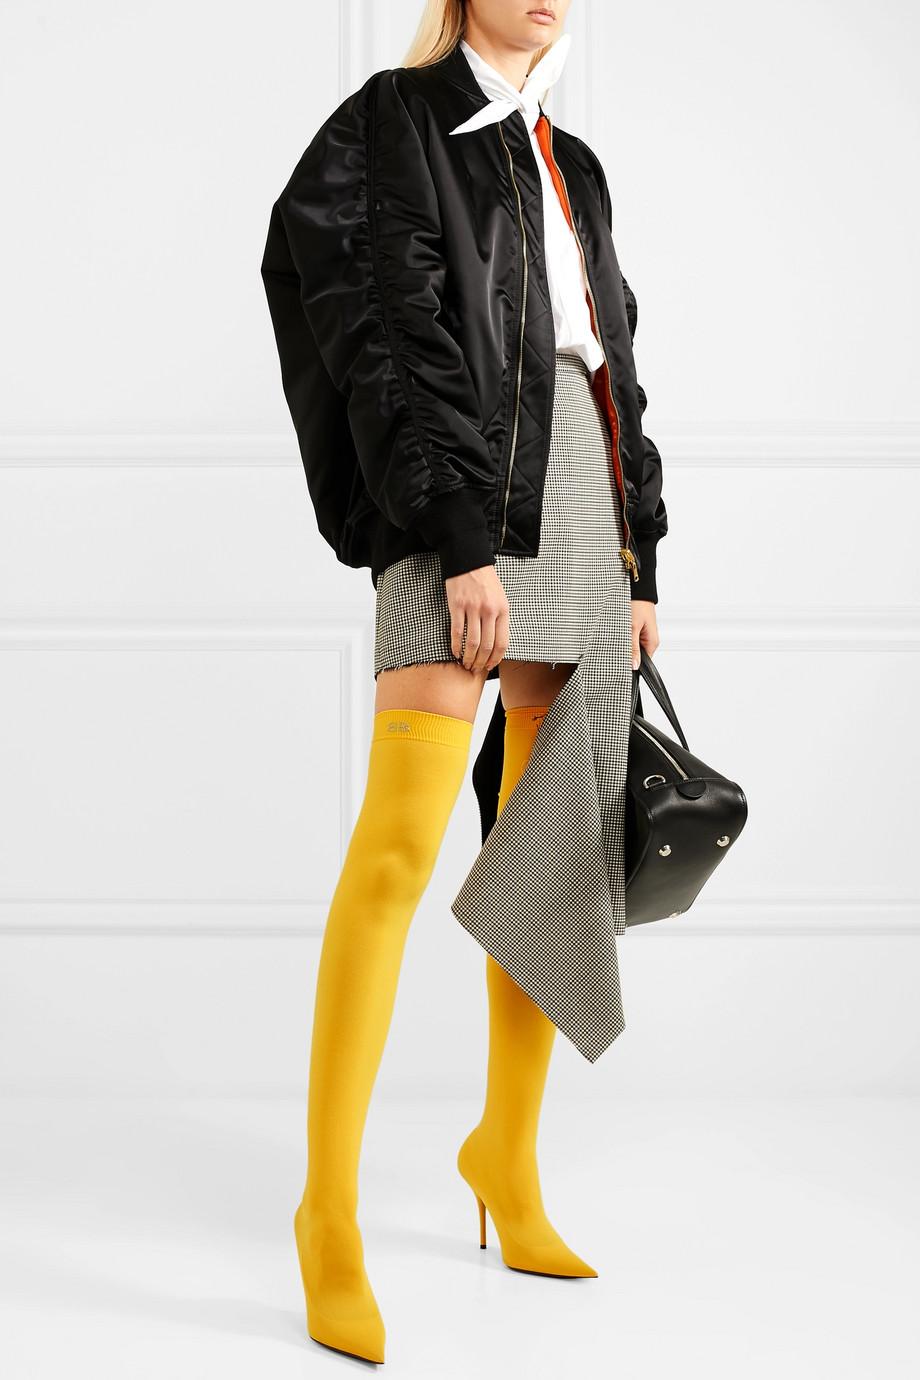 Over-the-knee boots Balenciaga buy Over-the-knee boots Balenciaga internet shop